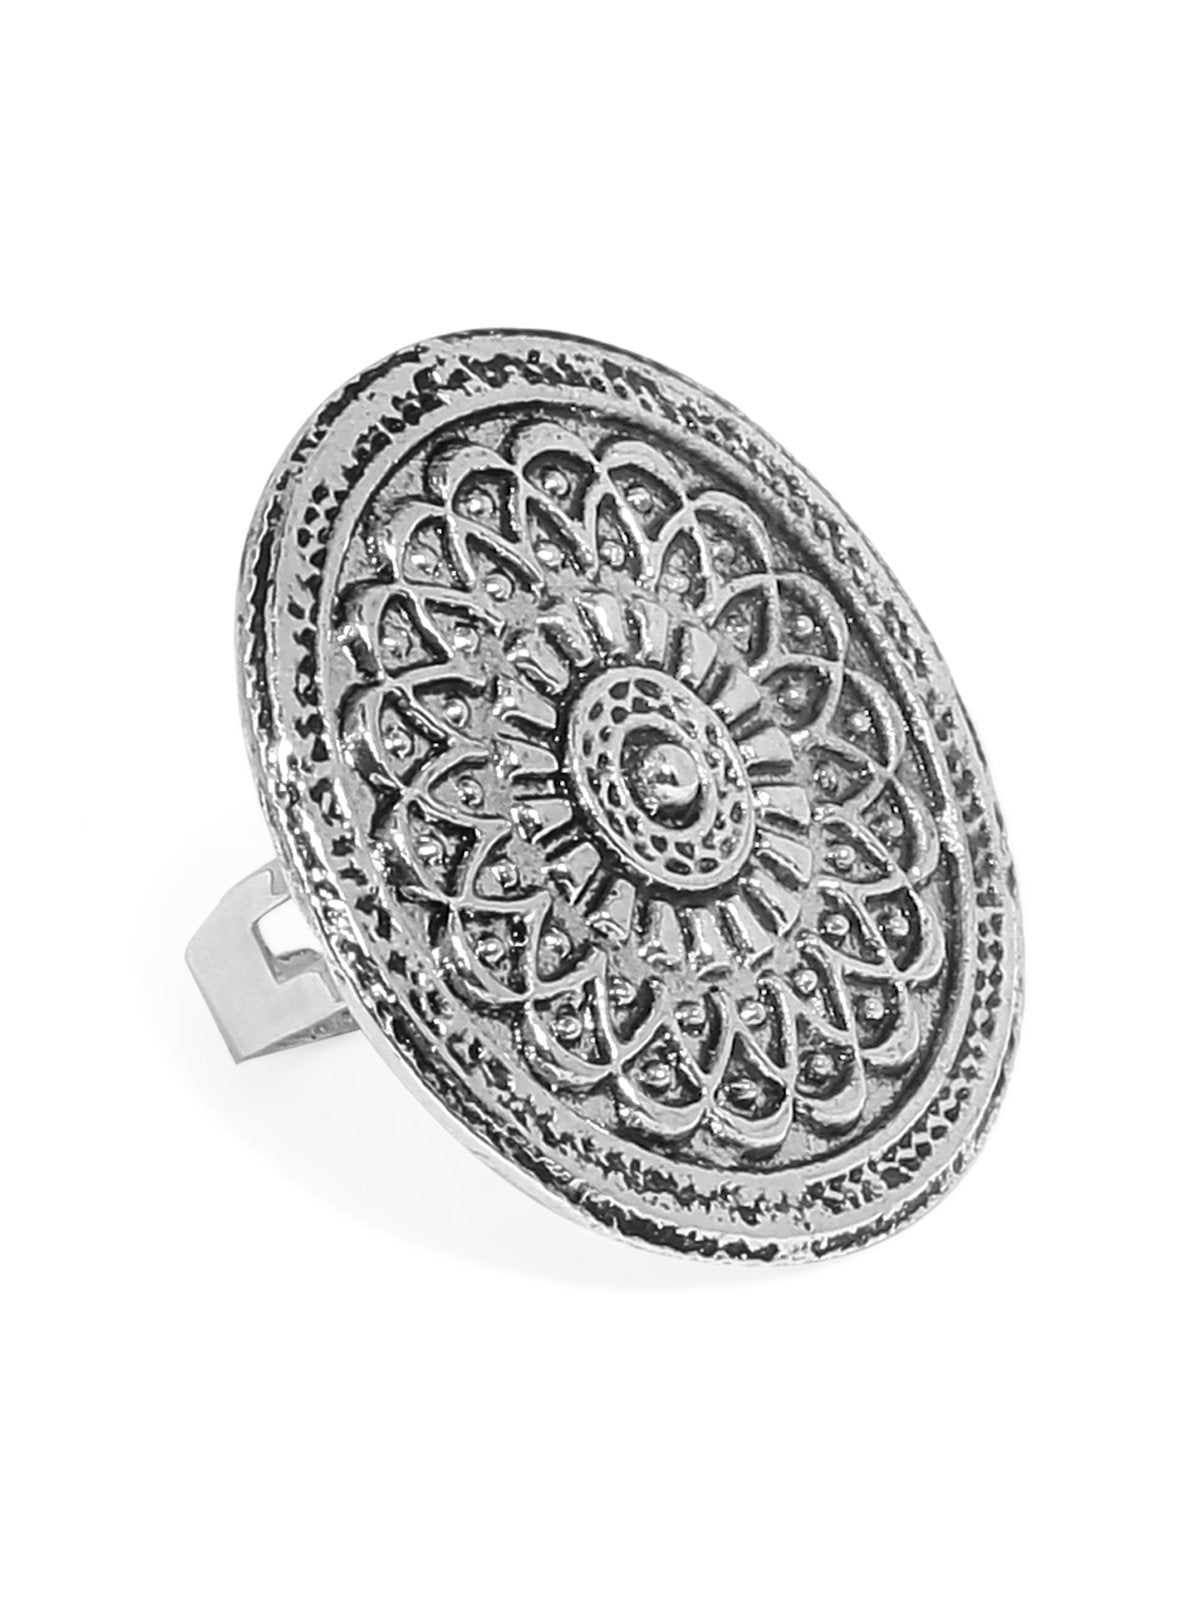 Antique Silver Tone Intricately Designed Finger Ring